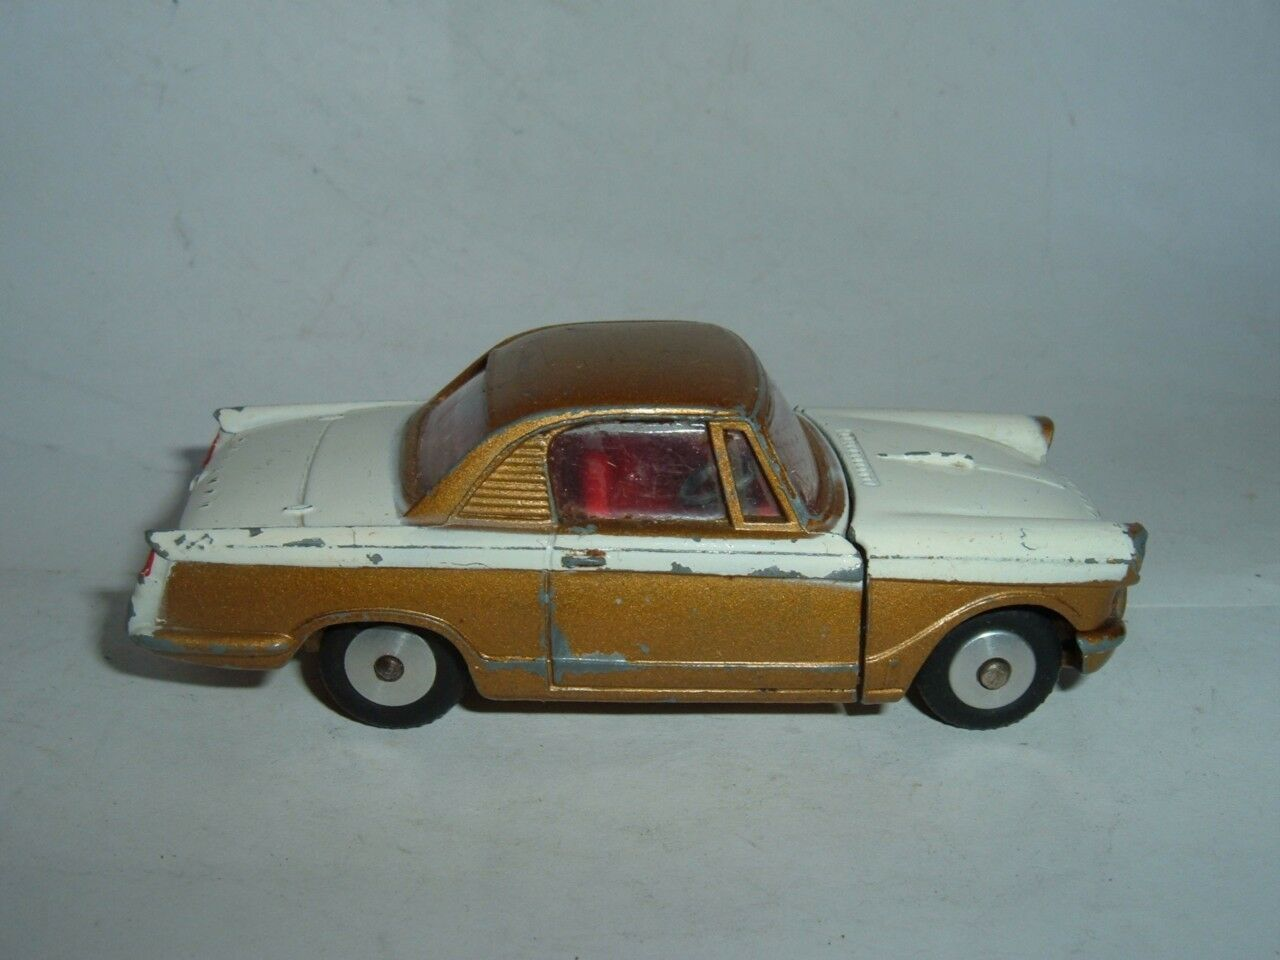 CORGI TOYS TRIUMPH HERALD COUPE VINTAGE CAR IN USED CONDITION SEE THE PICTURERS